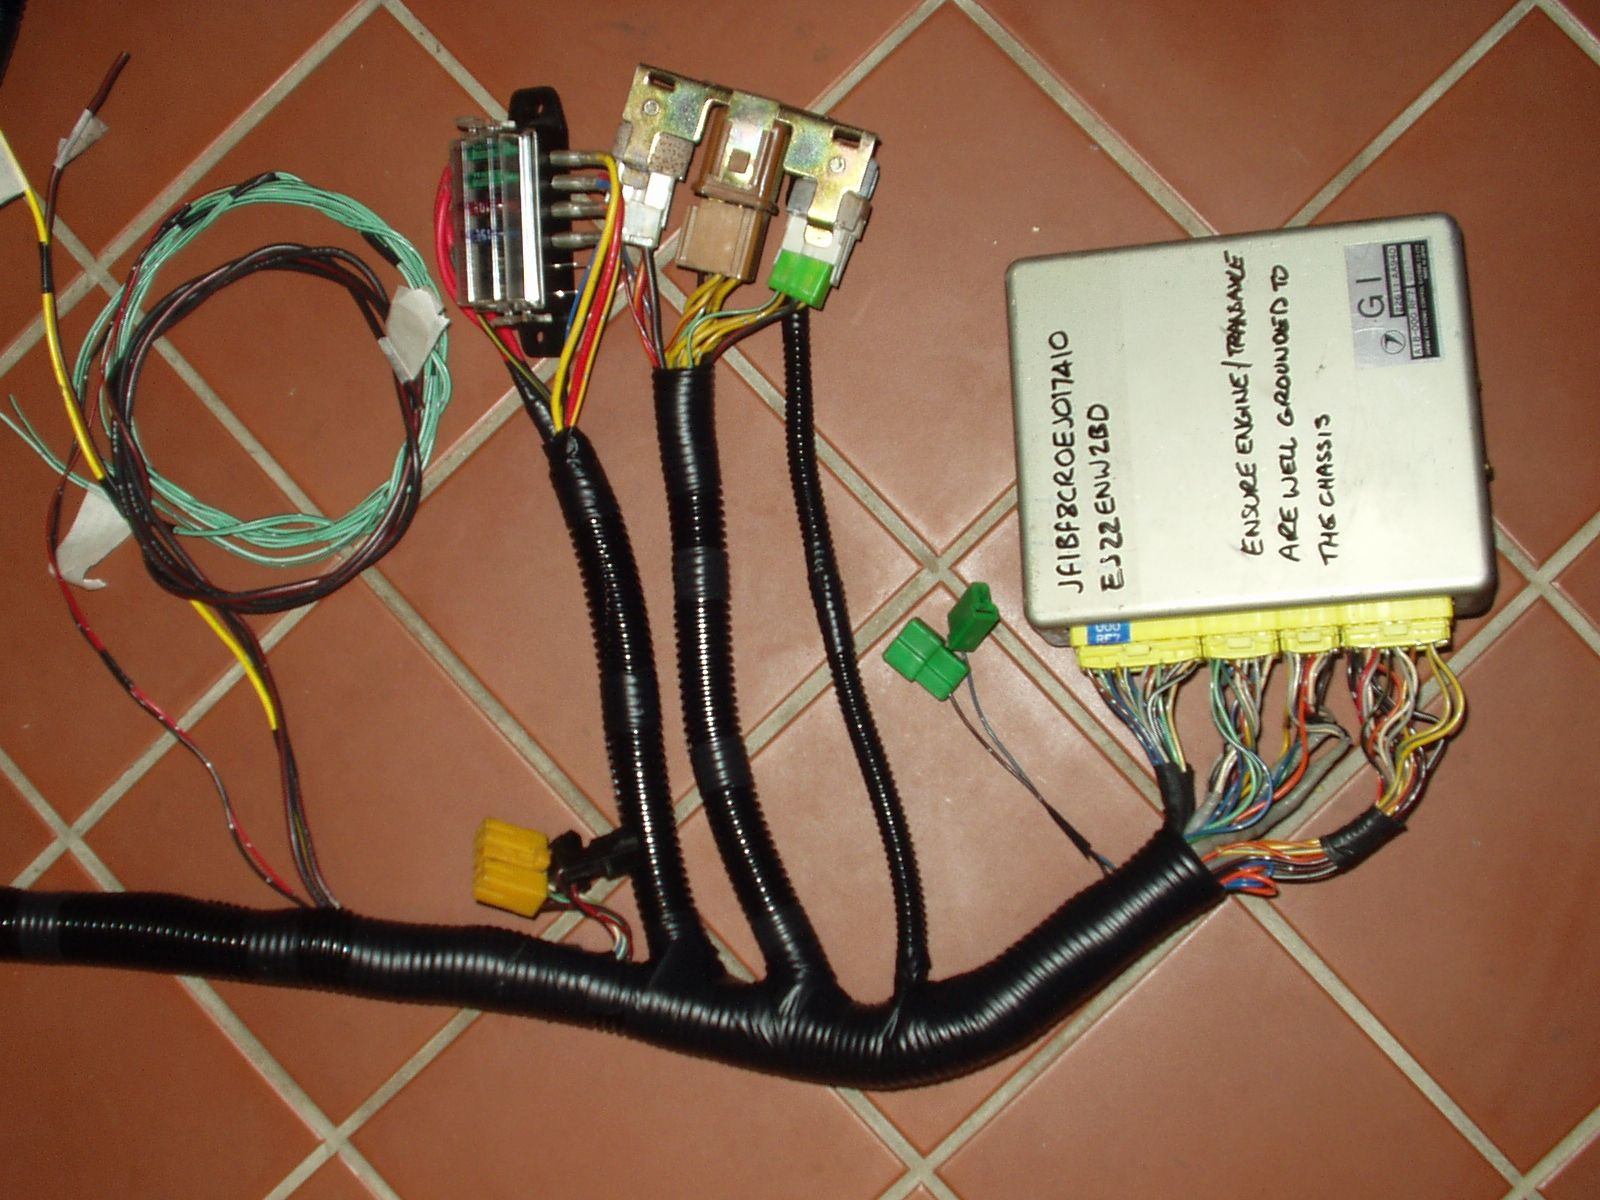 d186baf43aa3c8b77af1a997d8ffc09e a subaru engine wiring harness after rjes have done their engine swap wiring harness at aneh.co